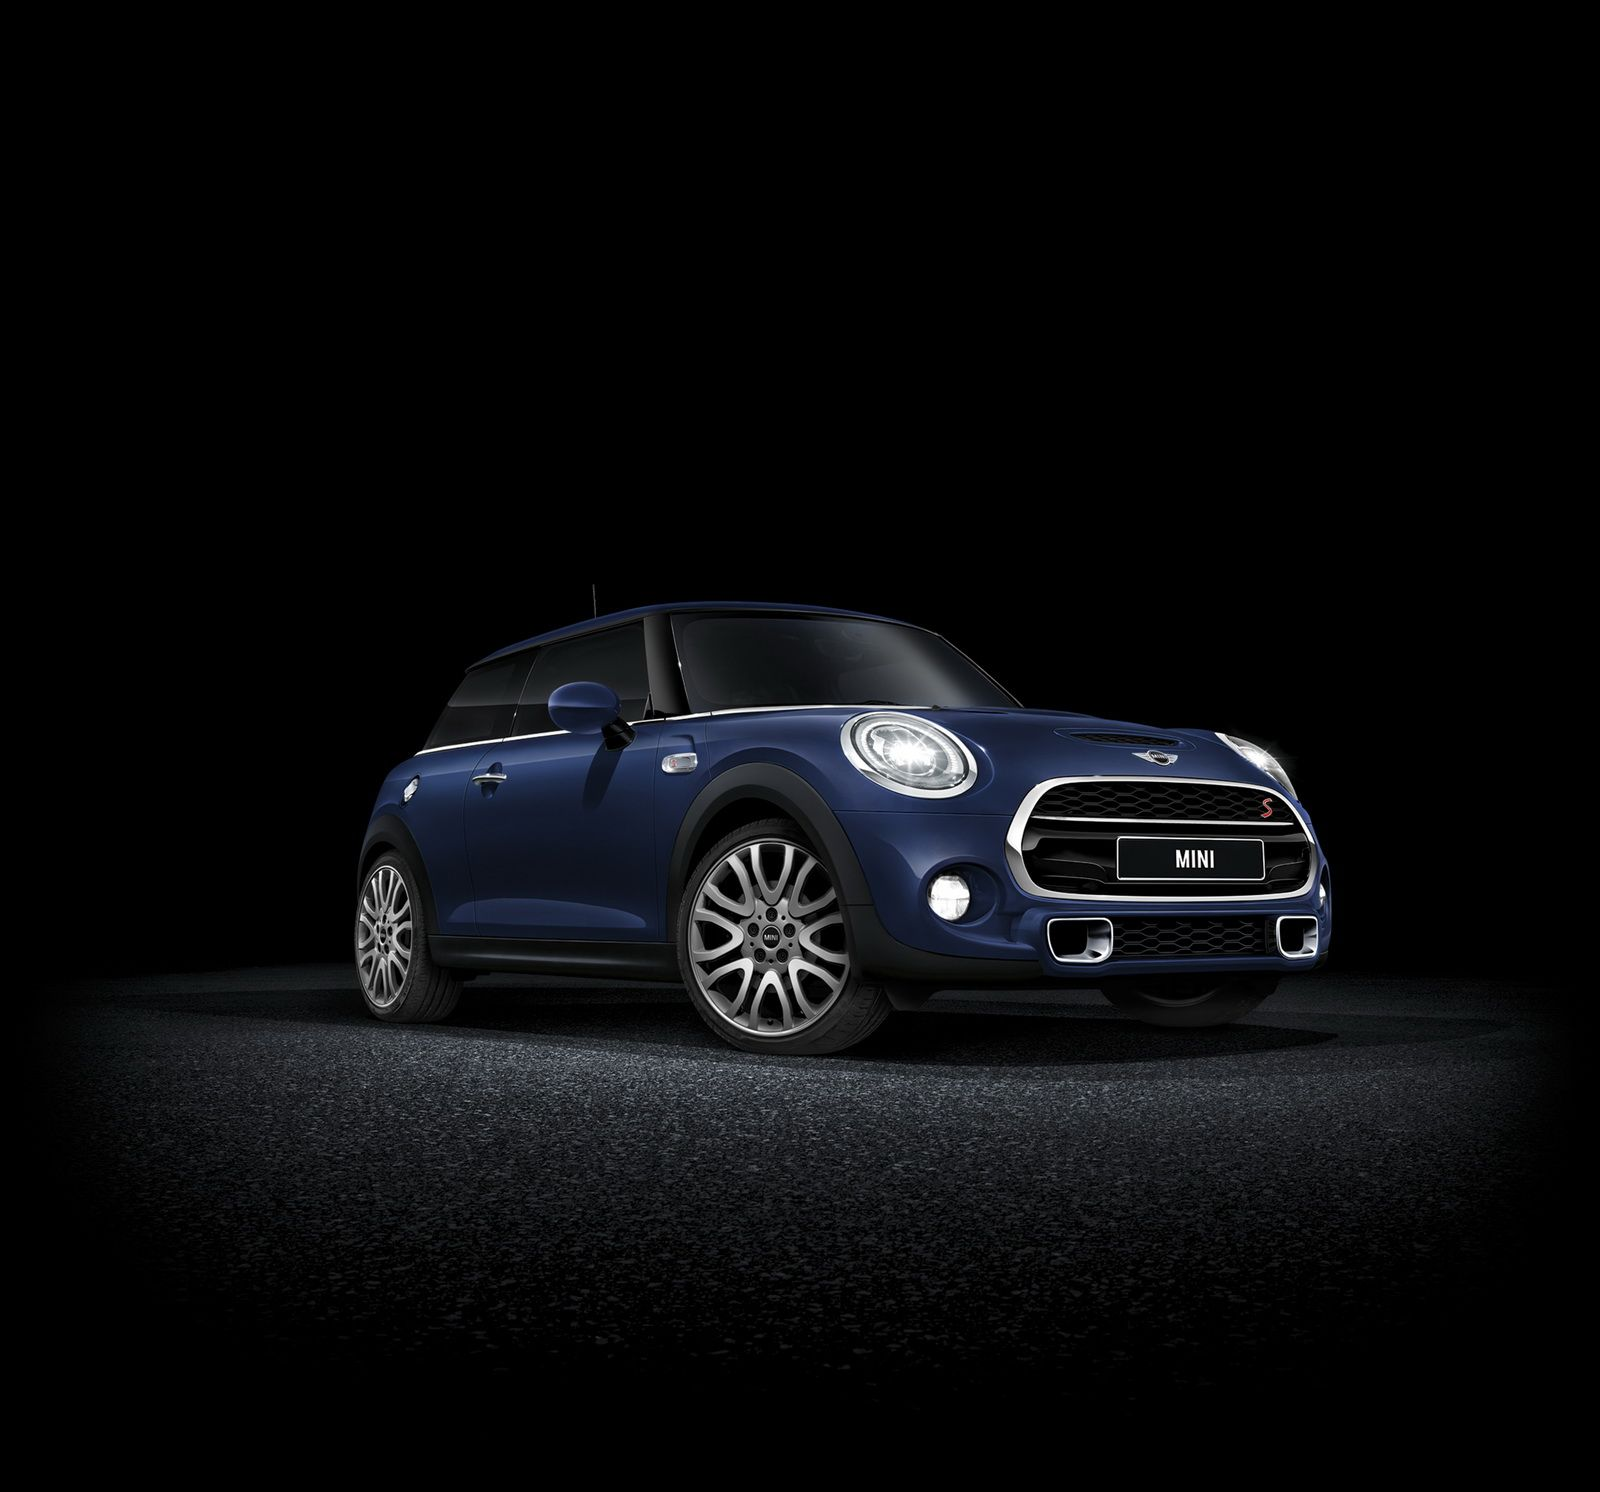 New Limited Edition Cooper S Jermyn Is Mini S Latest Offering To Japan Carscoops Mini Cooper S Mini Cooper Japan